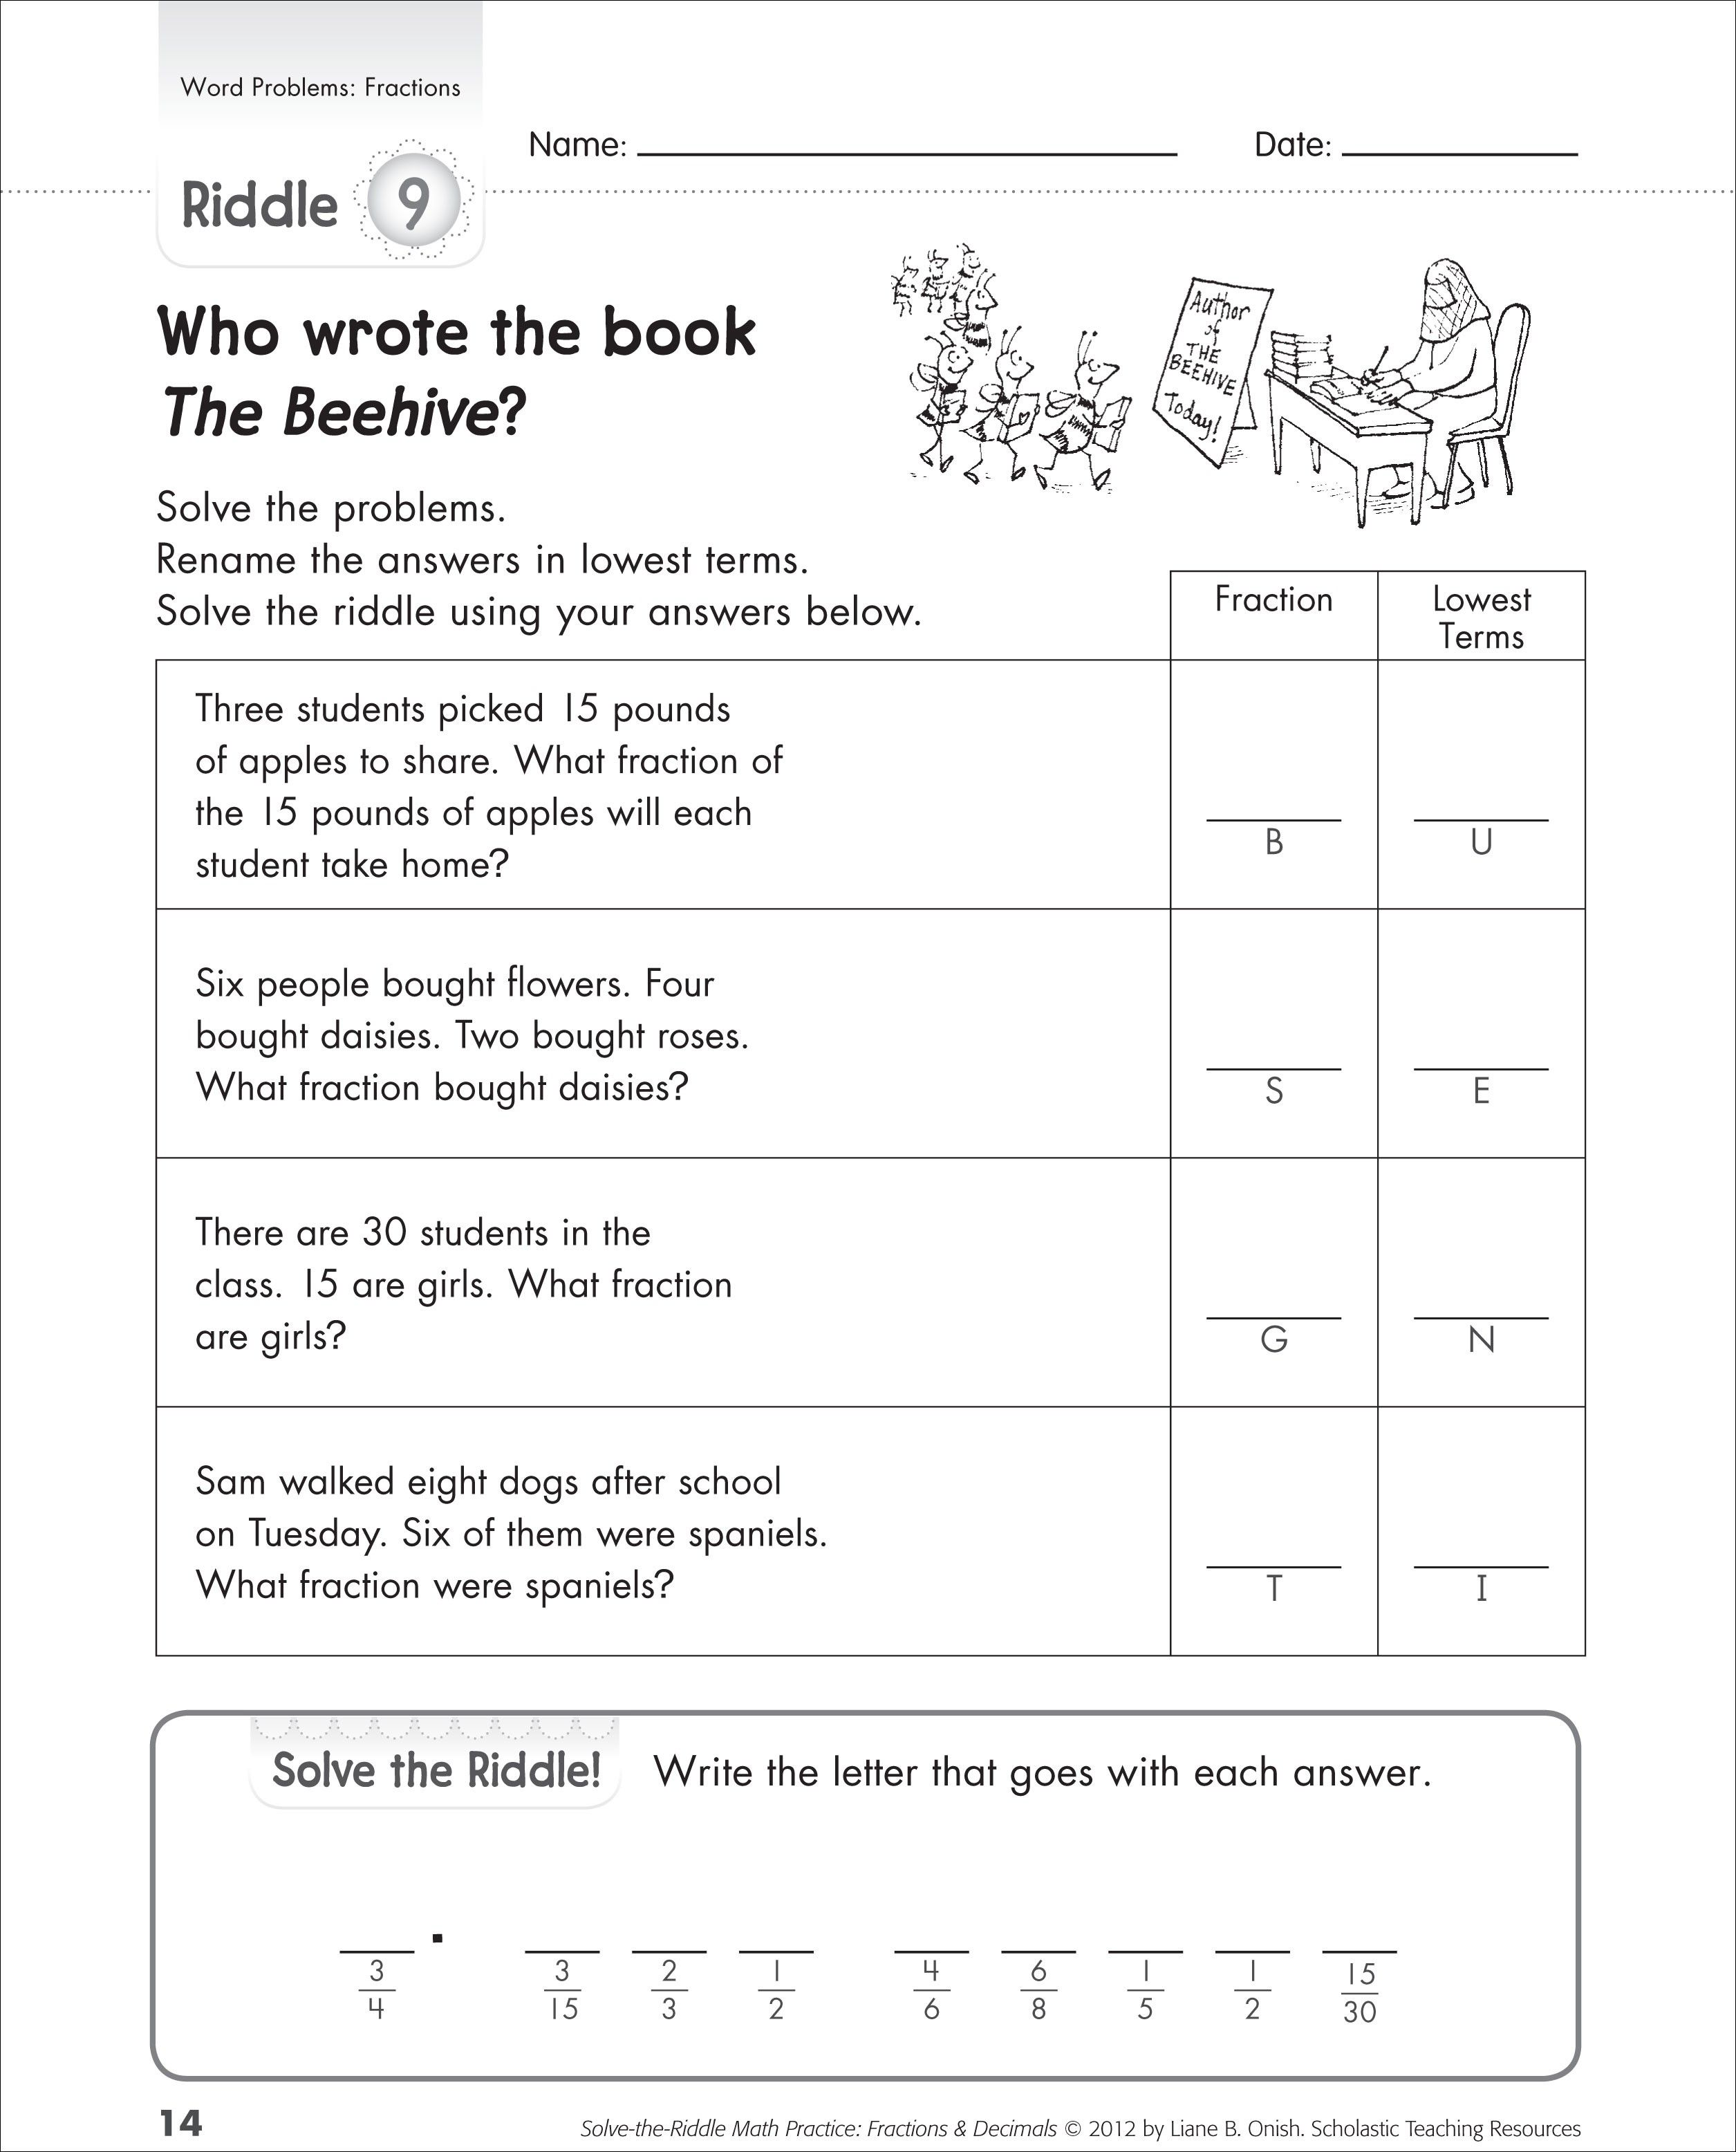 Bining Like Terms Riddle Worksheet